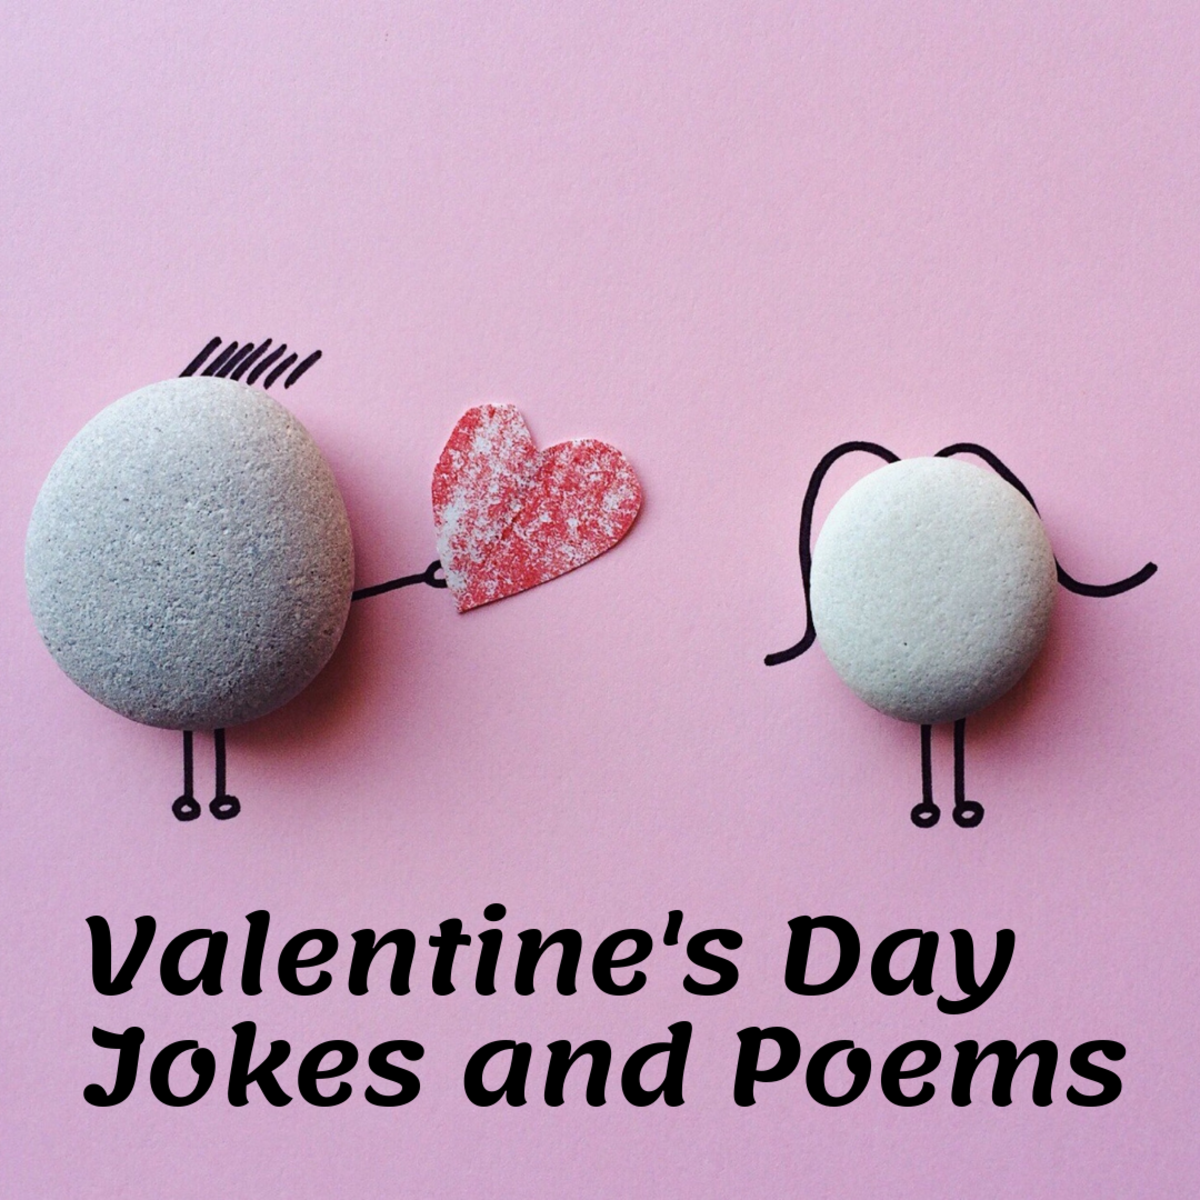 Valentine's Day Jokes and Funny Poems